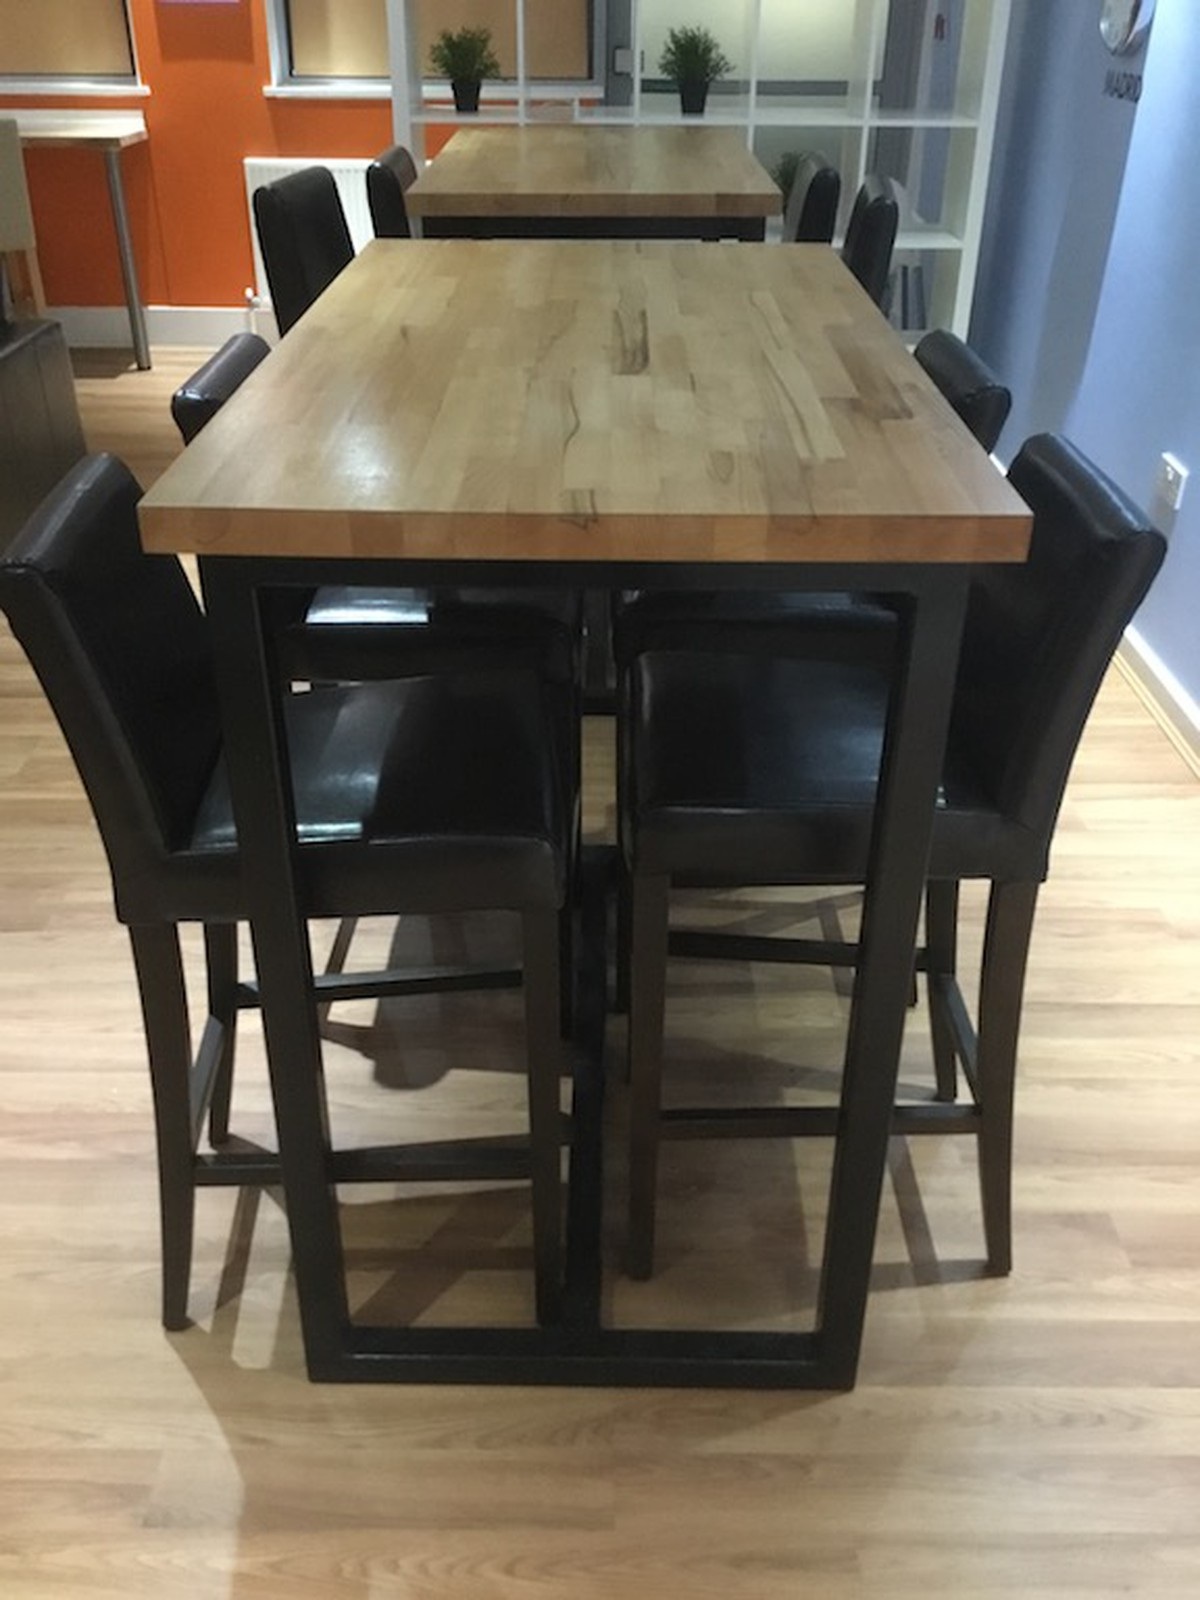 secondhand chairs and tables cafe or bistro chairs job lot cafe